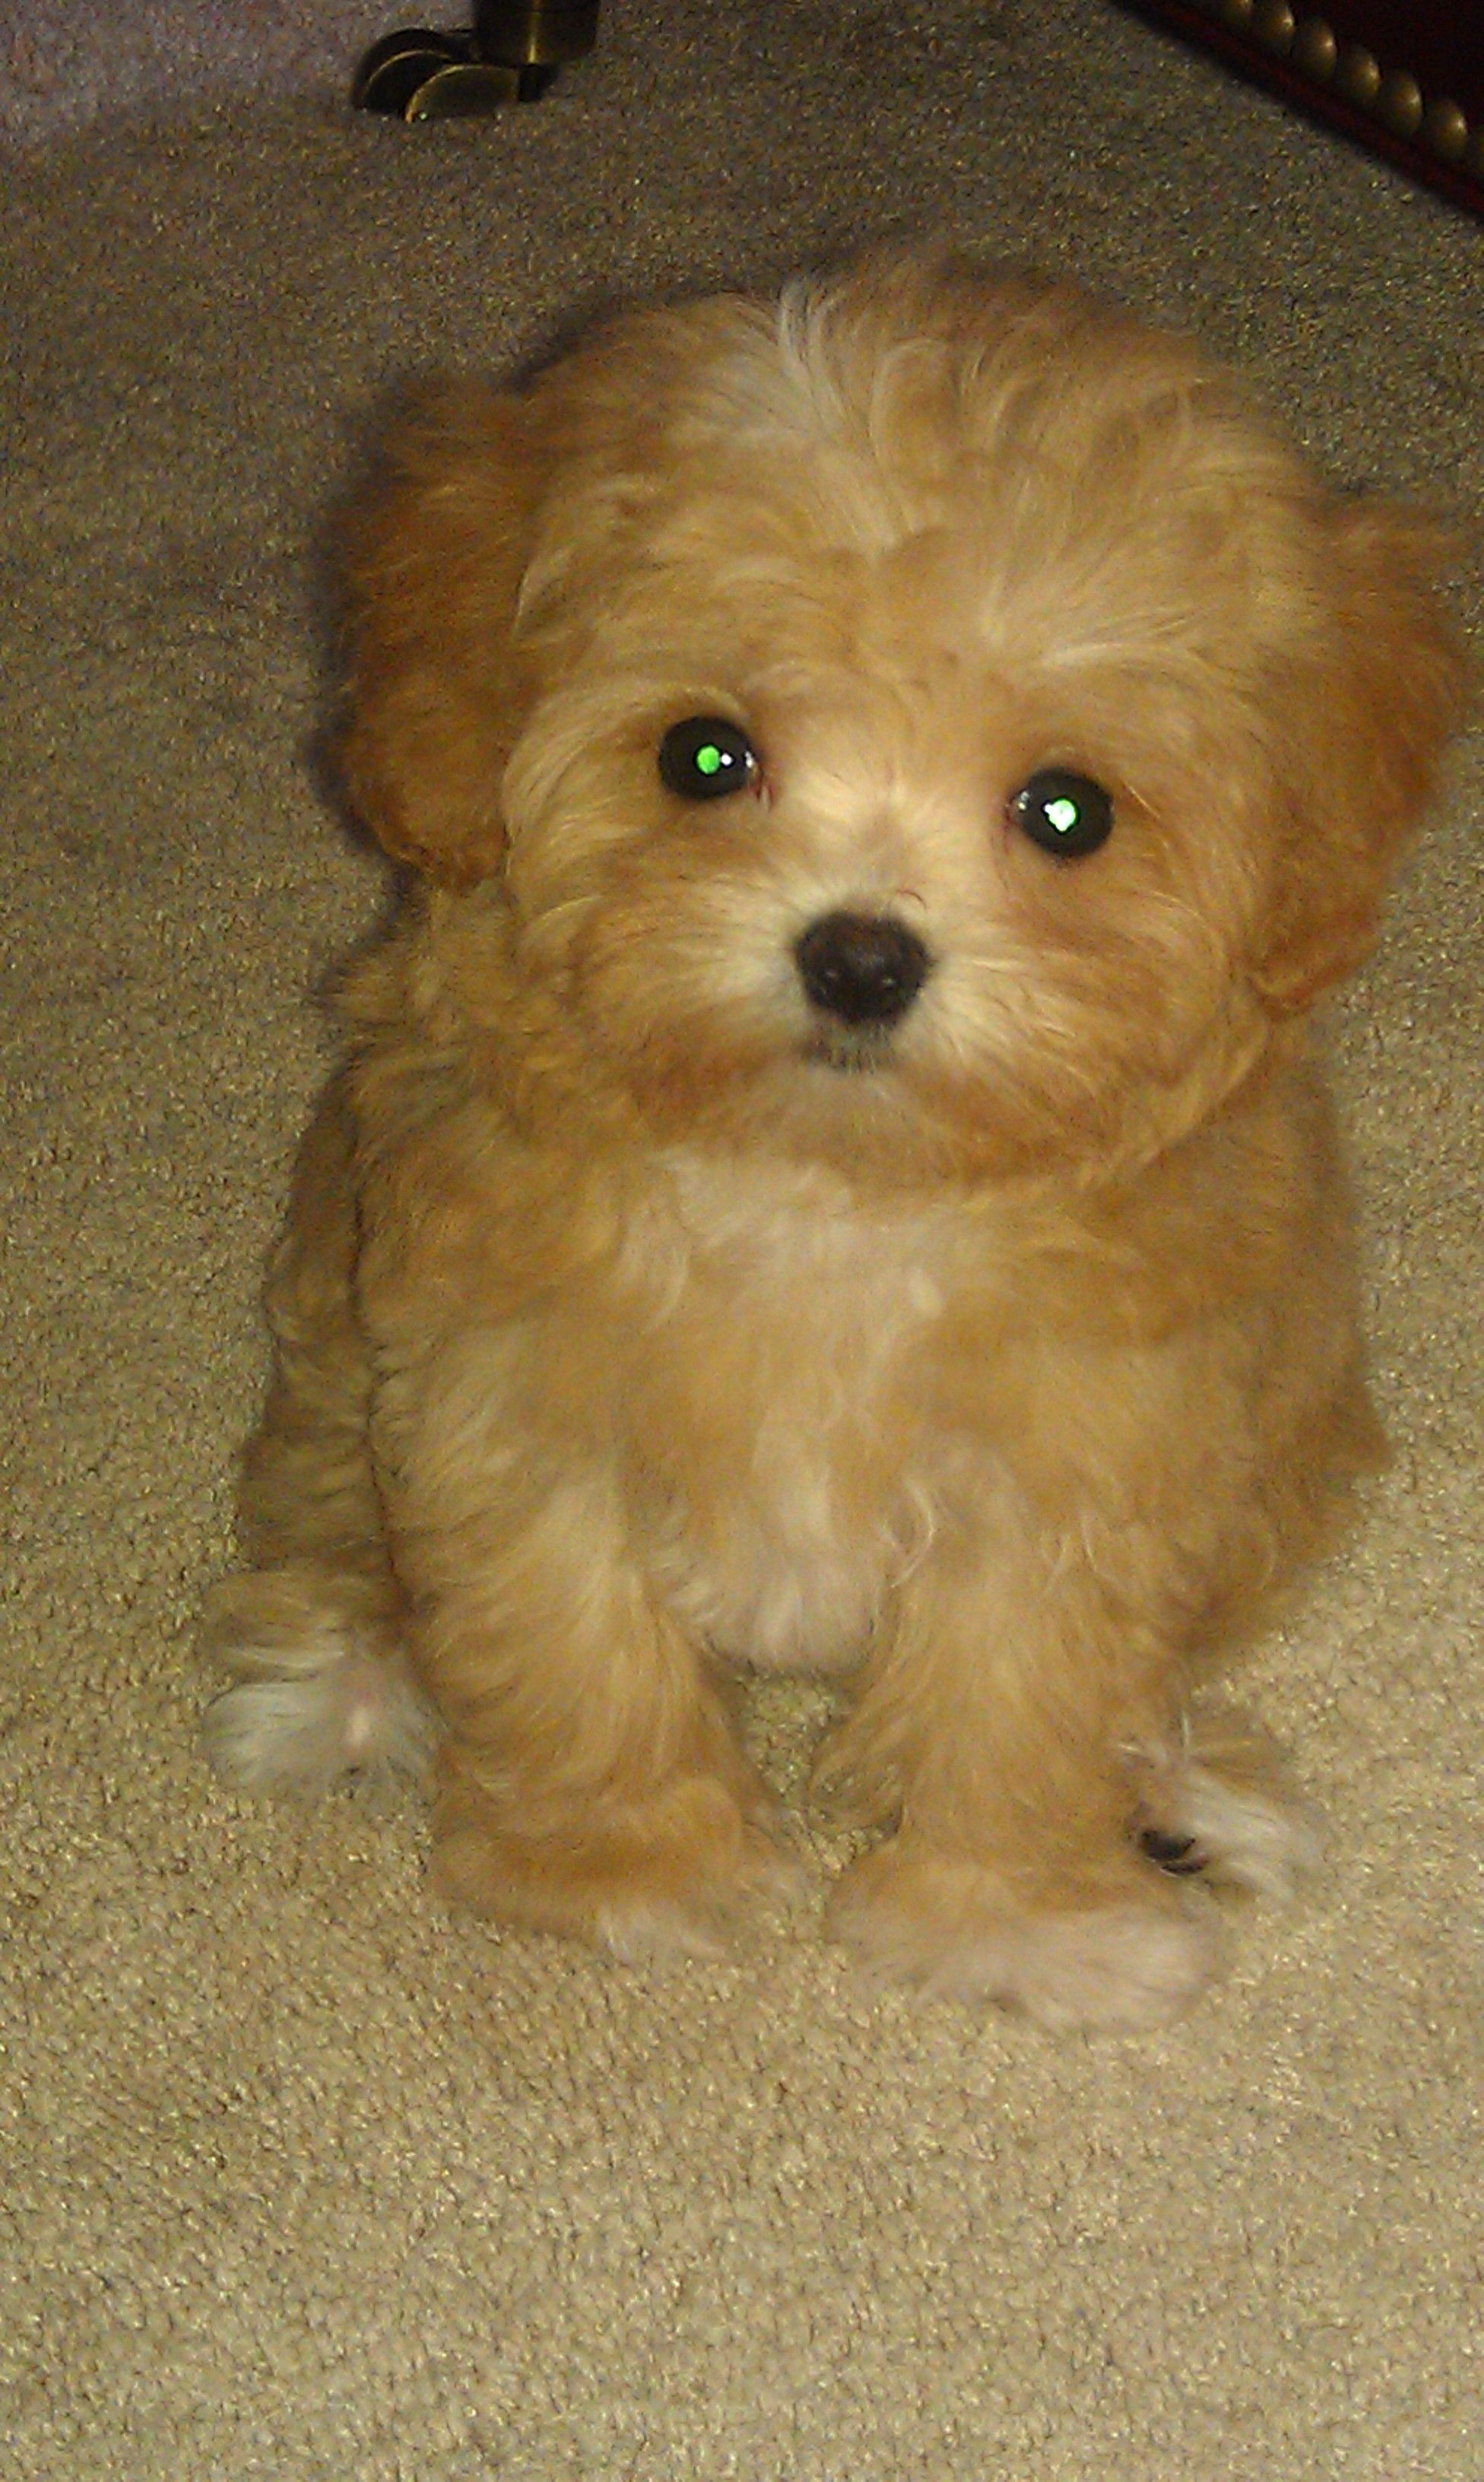 Bella Cutest Maltipoo Ever But That Name Has Got To Go Ruined